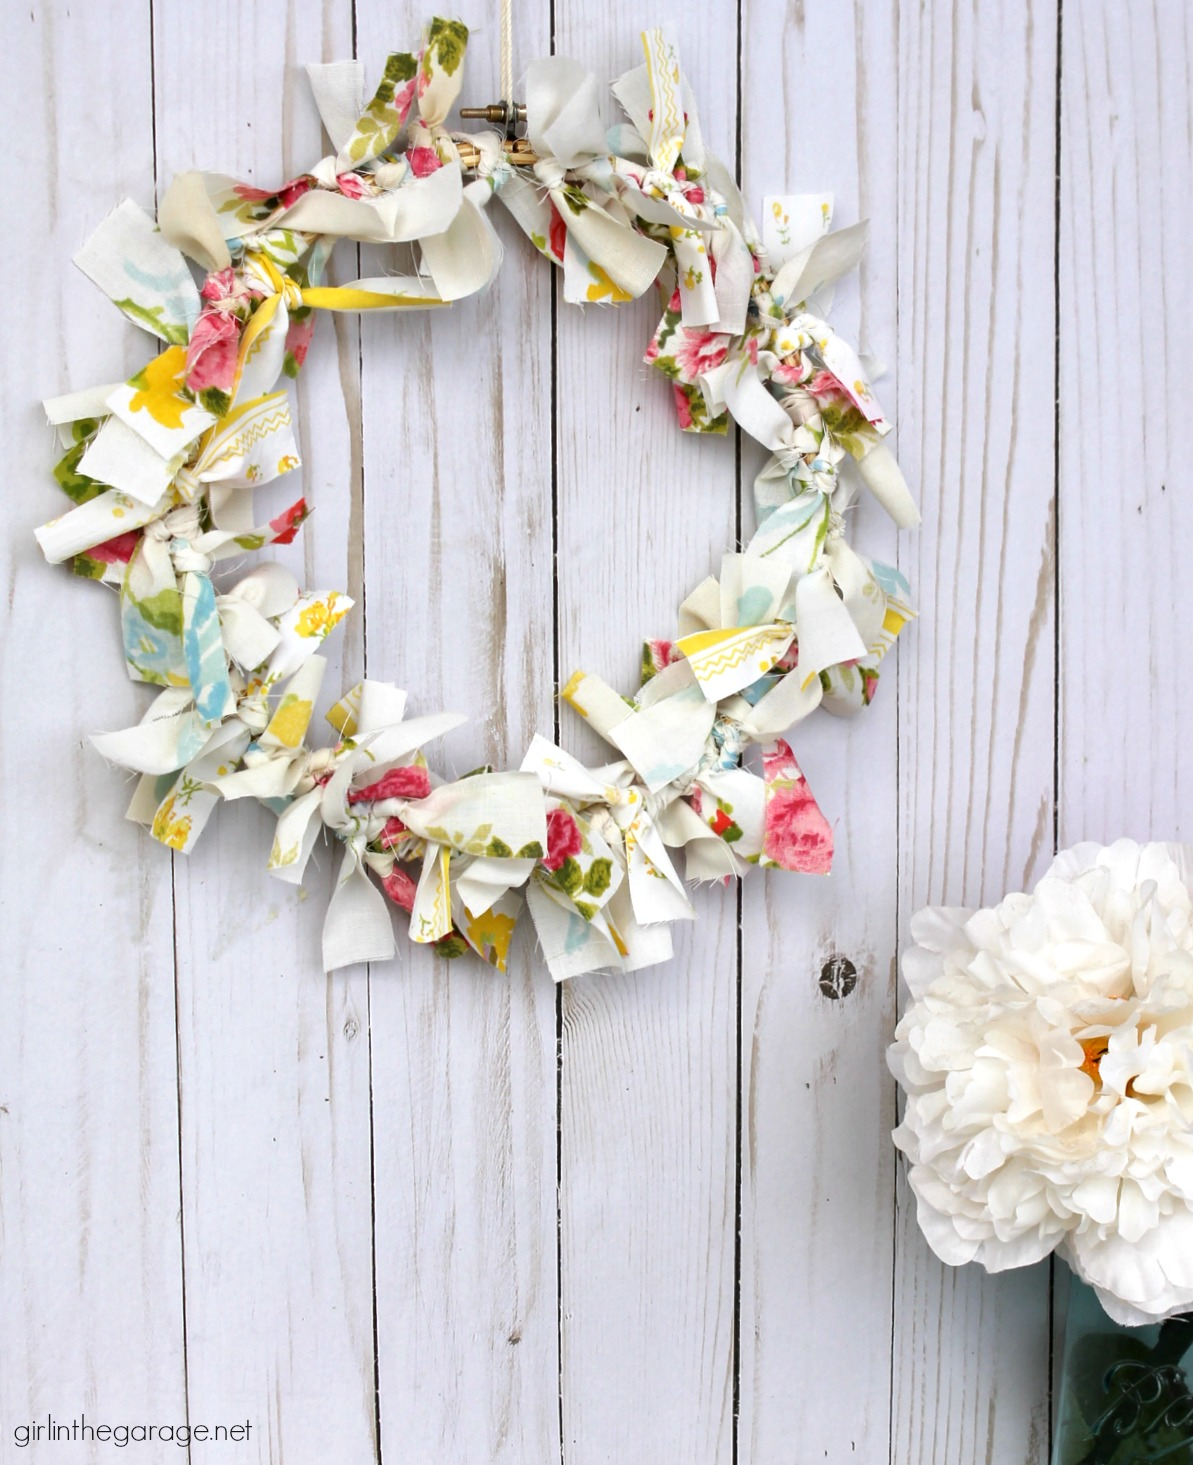 Make an easy DIY rag wreath for spring with vintage fabric - Step-by-step tutorial by Girl in the Garage